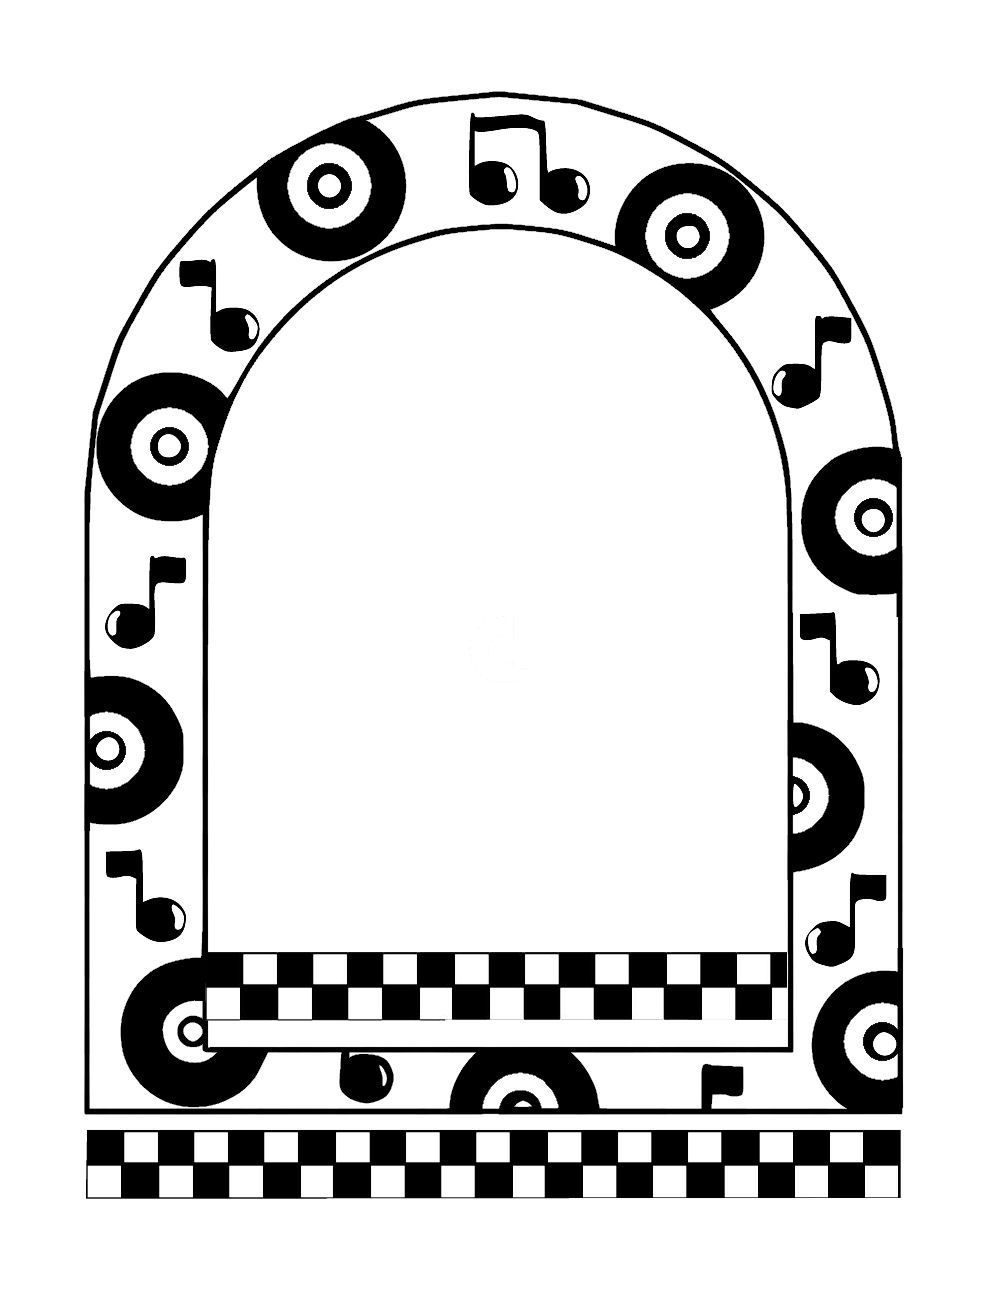 50s clipart border. Create with tlc fifties